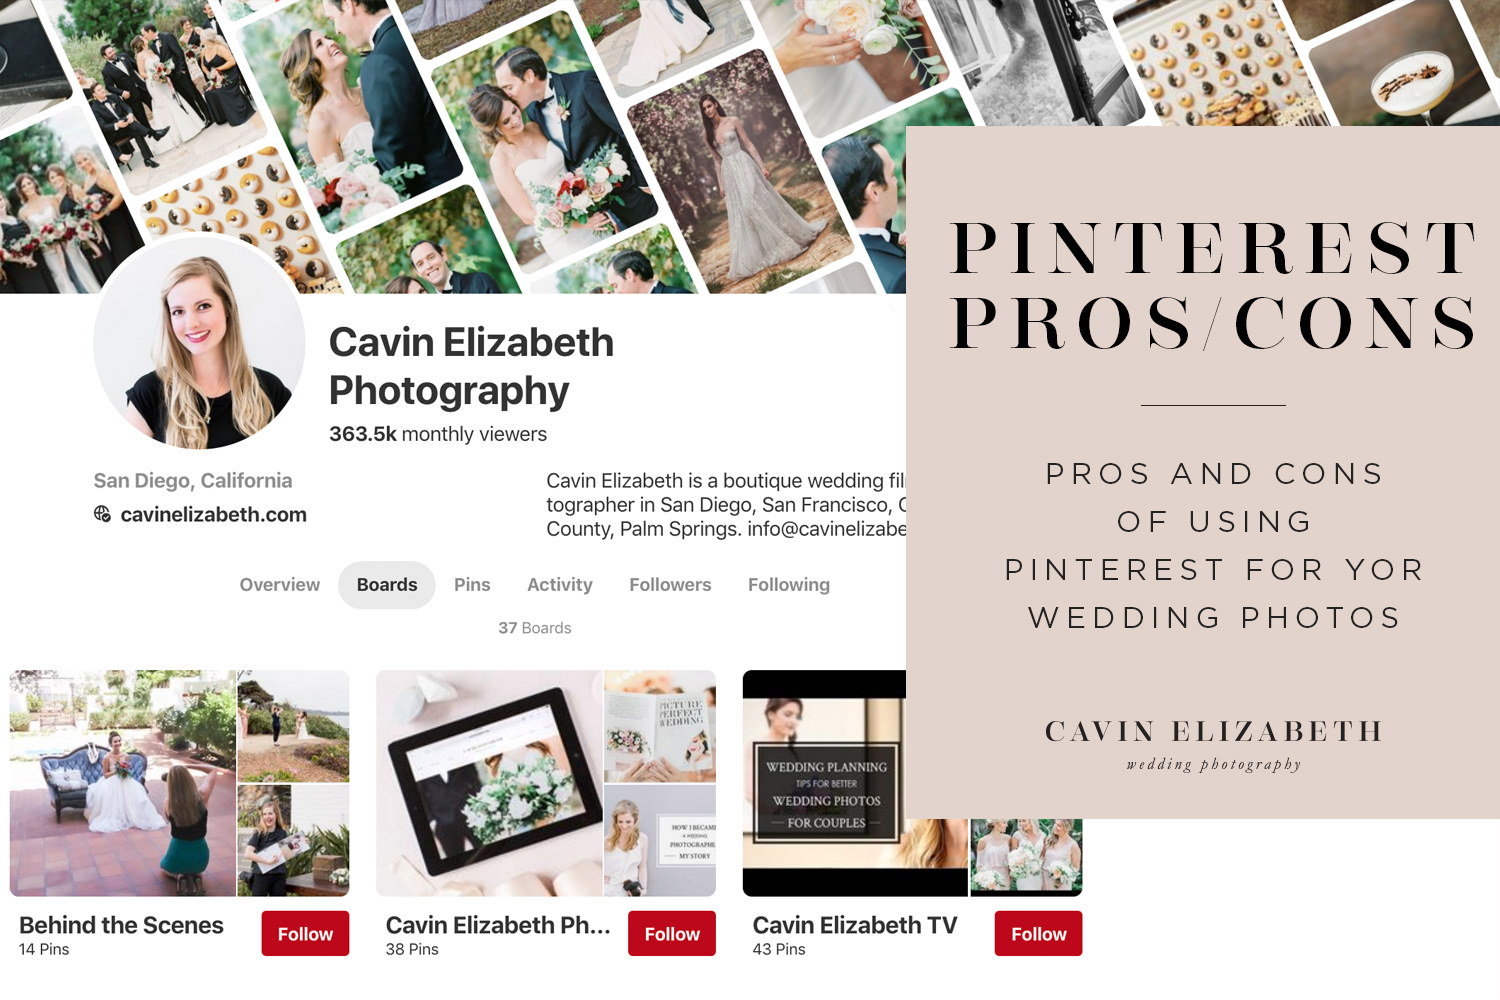 Using Pinterest for Your Wedding Photography Pros and Cons, the good and bad of looking at Pinterest for wedding photo ideas